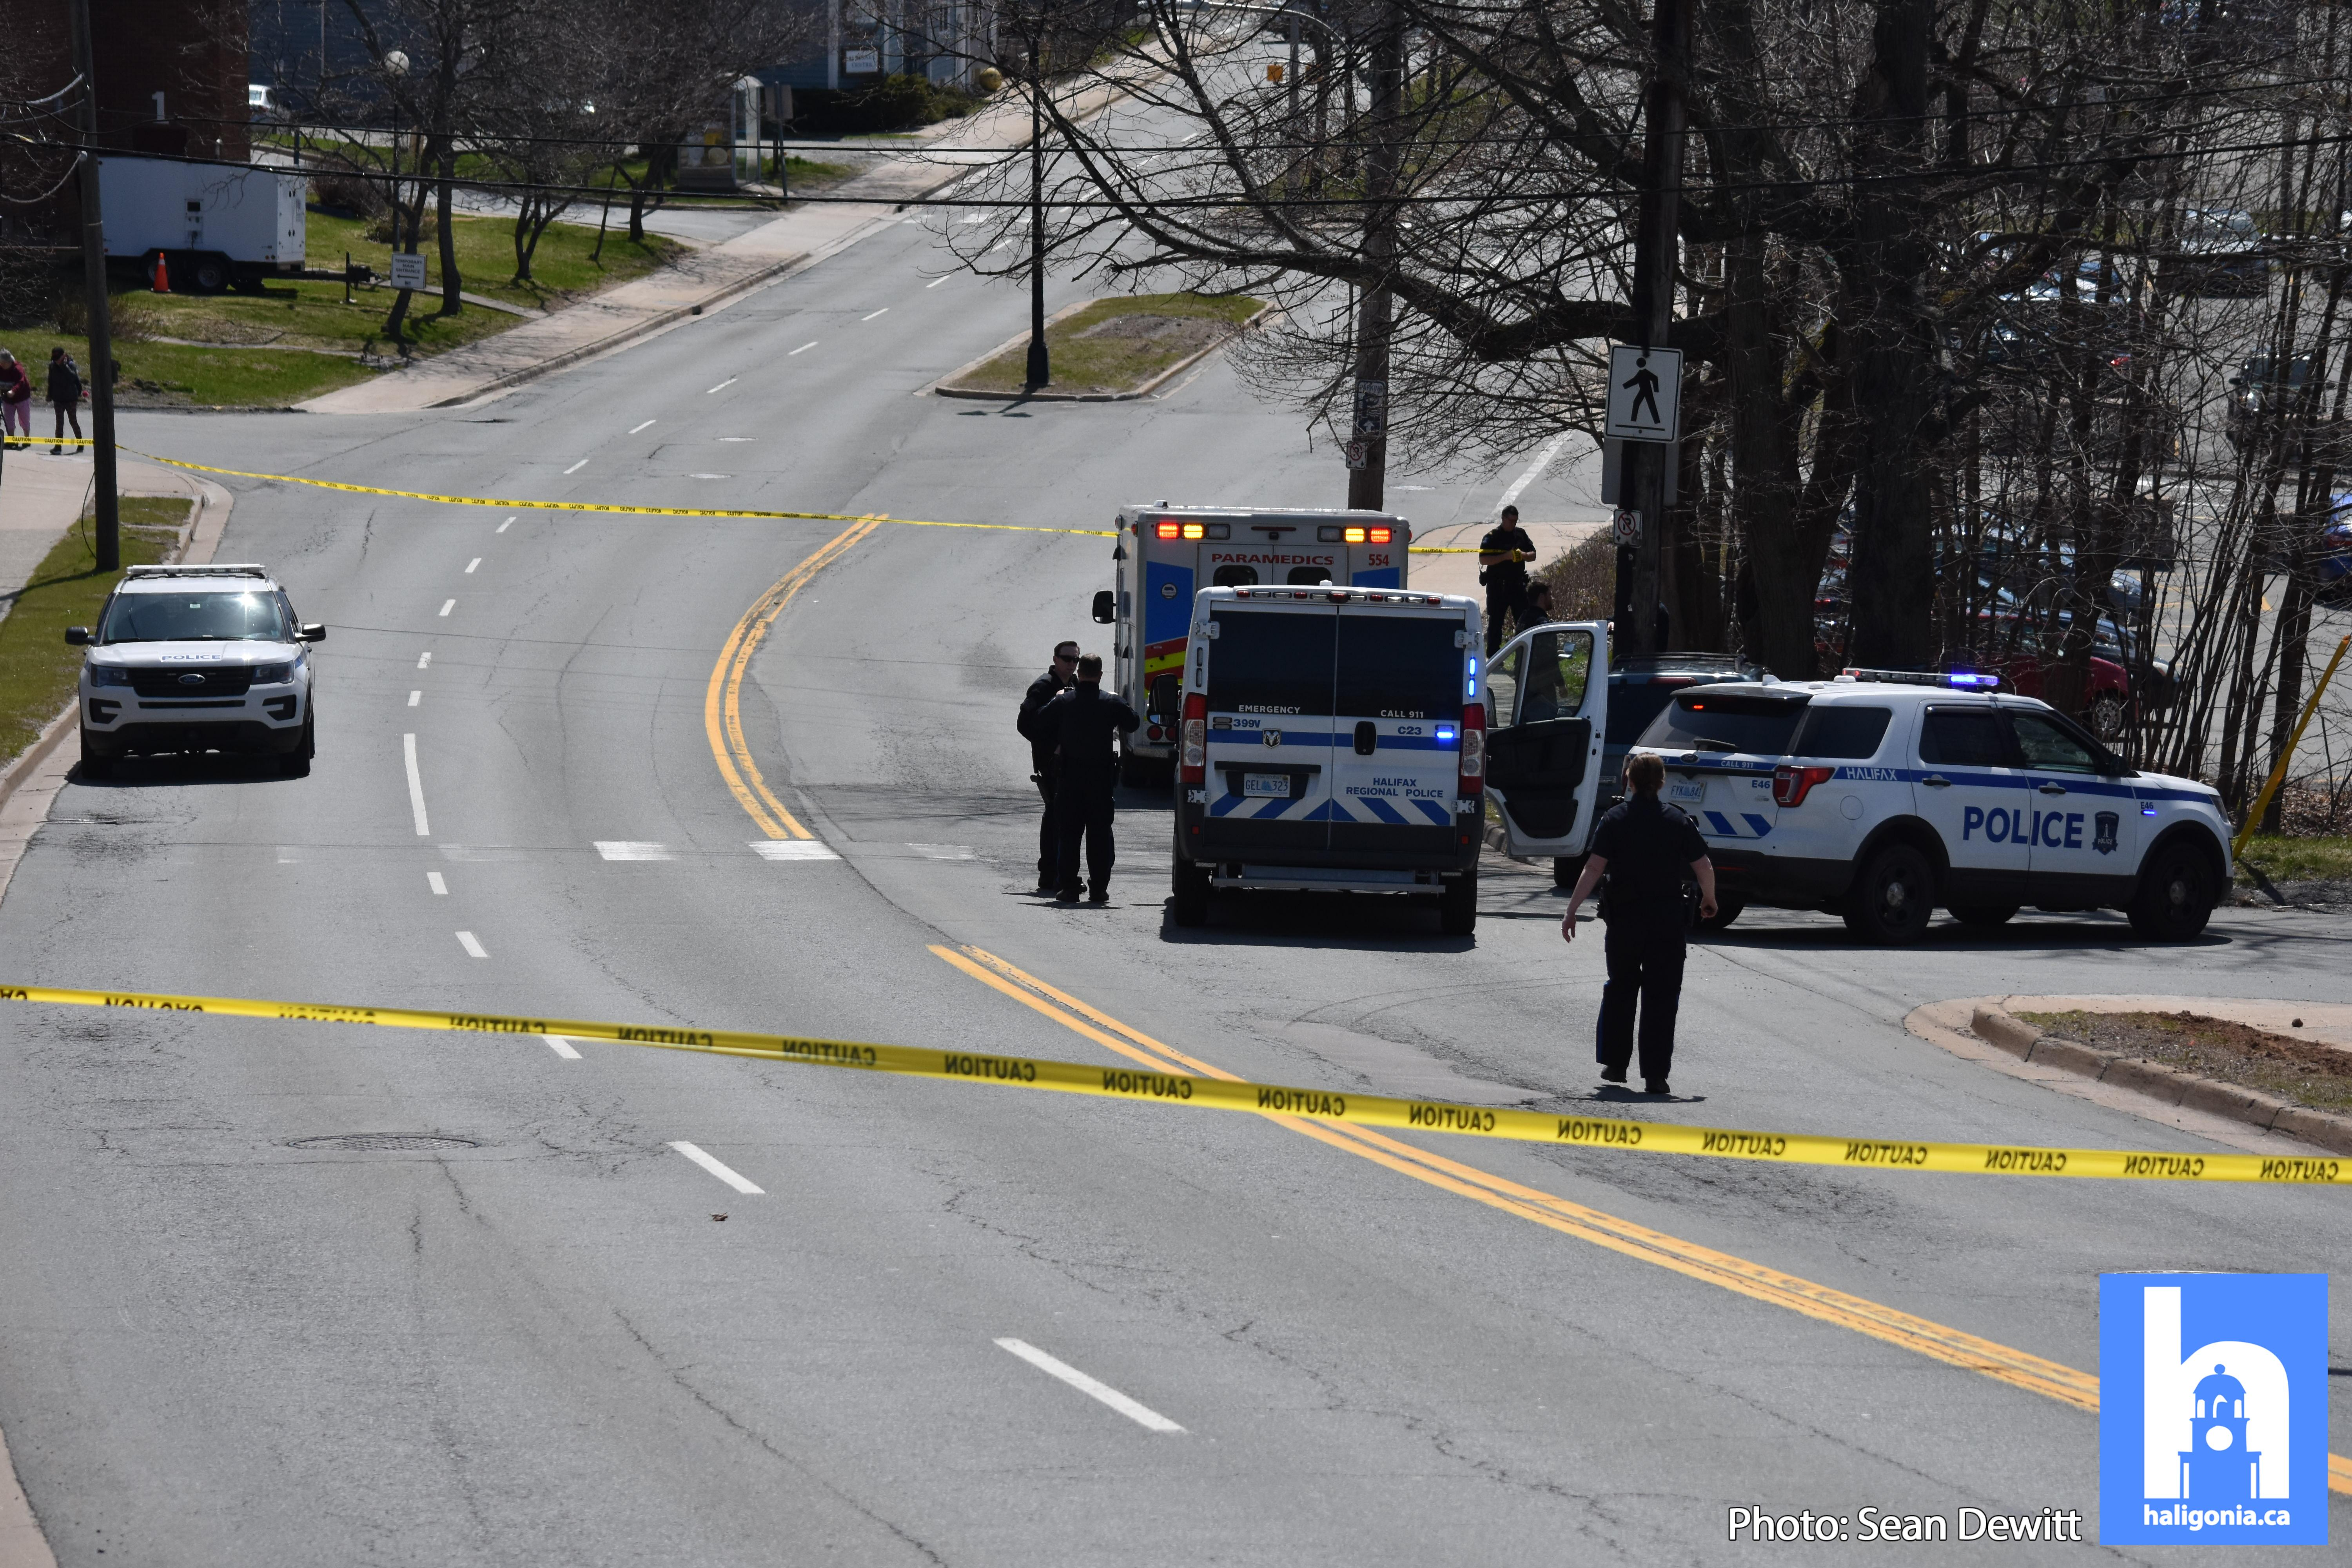 Police are investigating cyclist/motor vehicle collision in